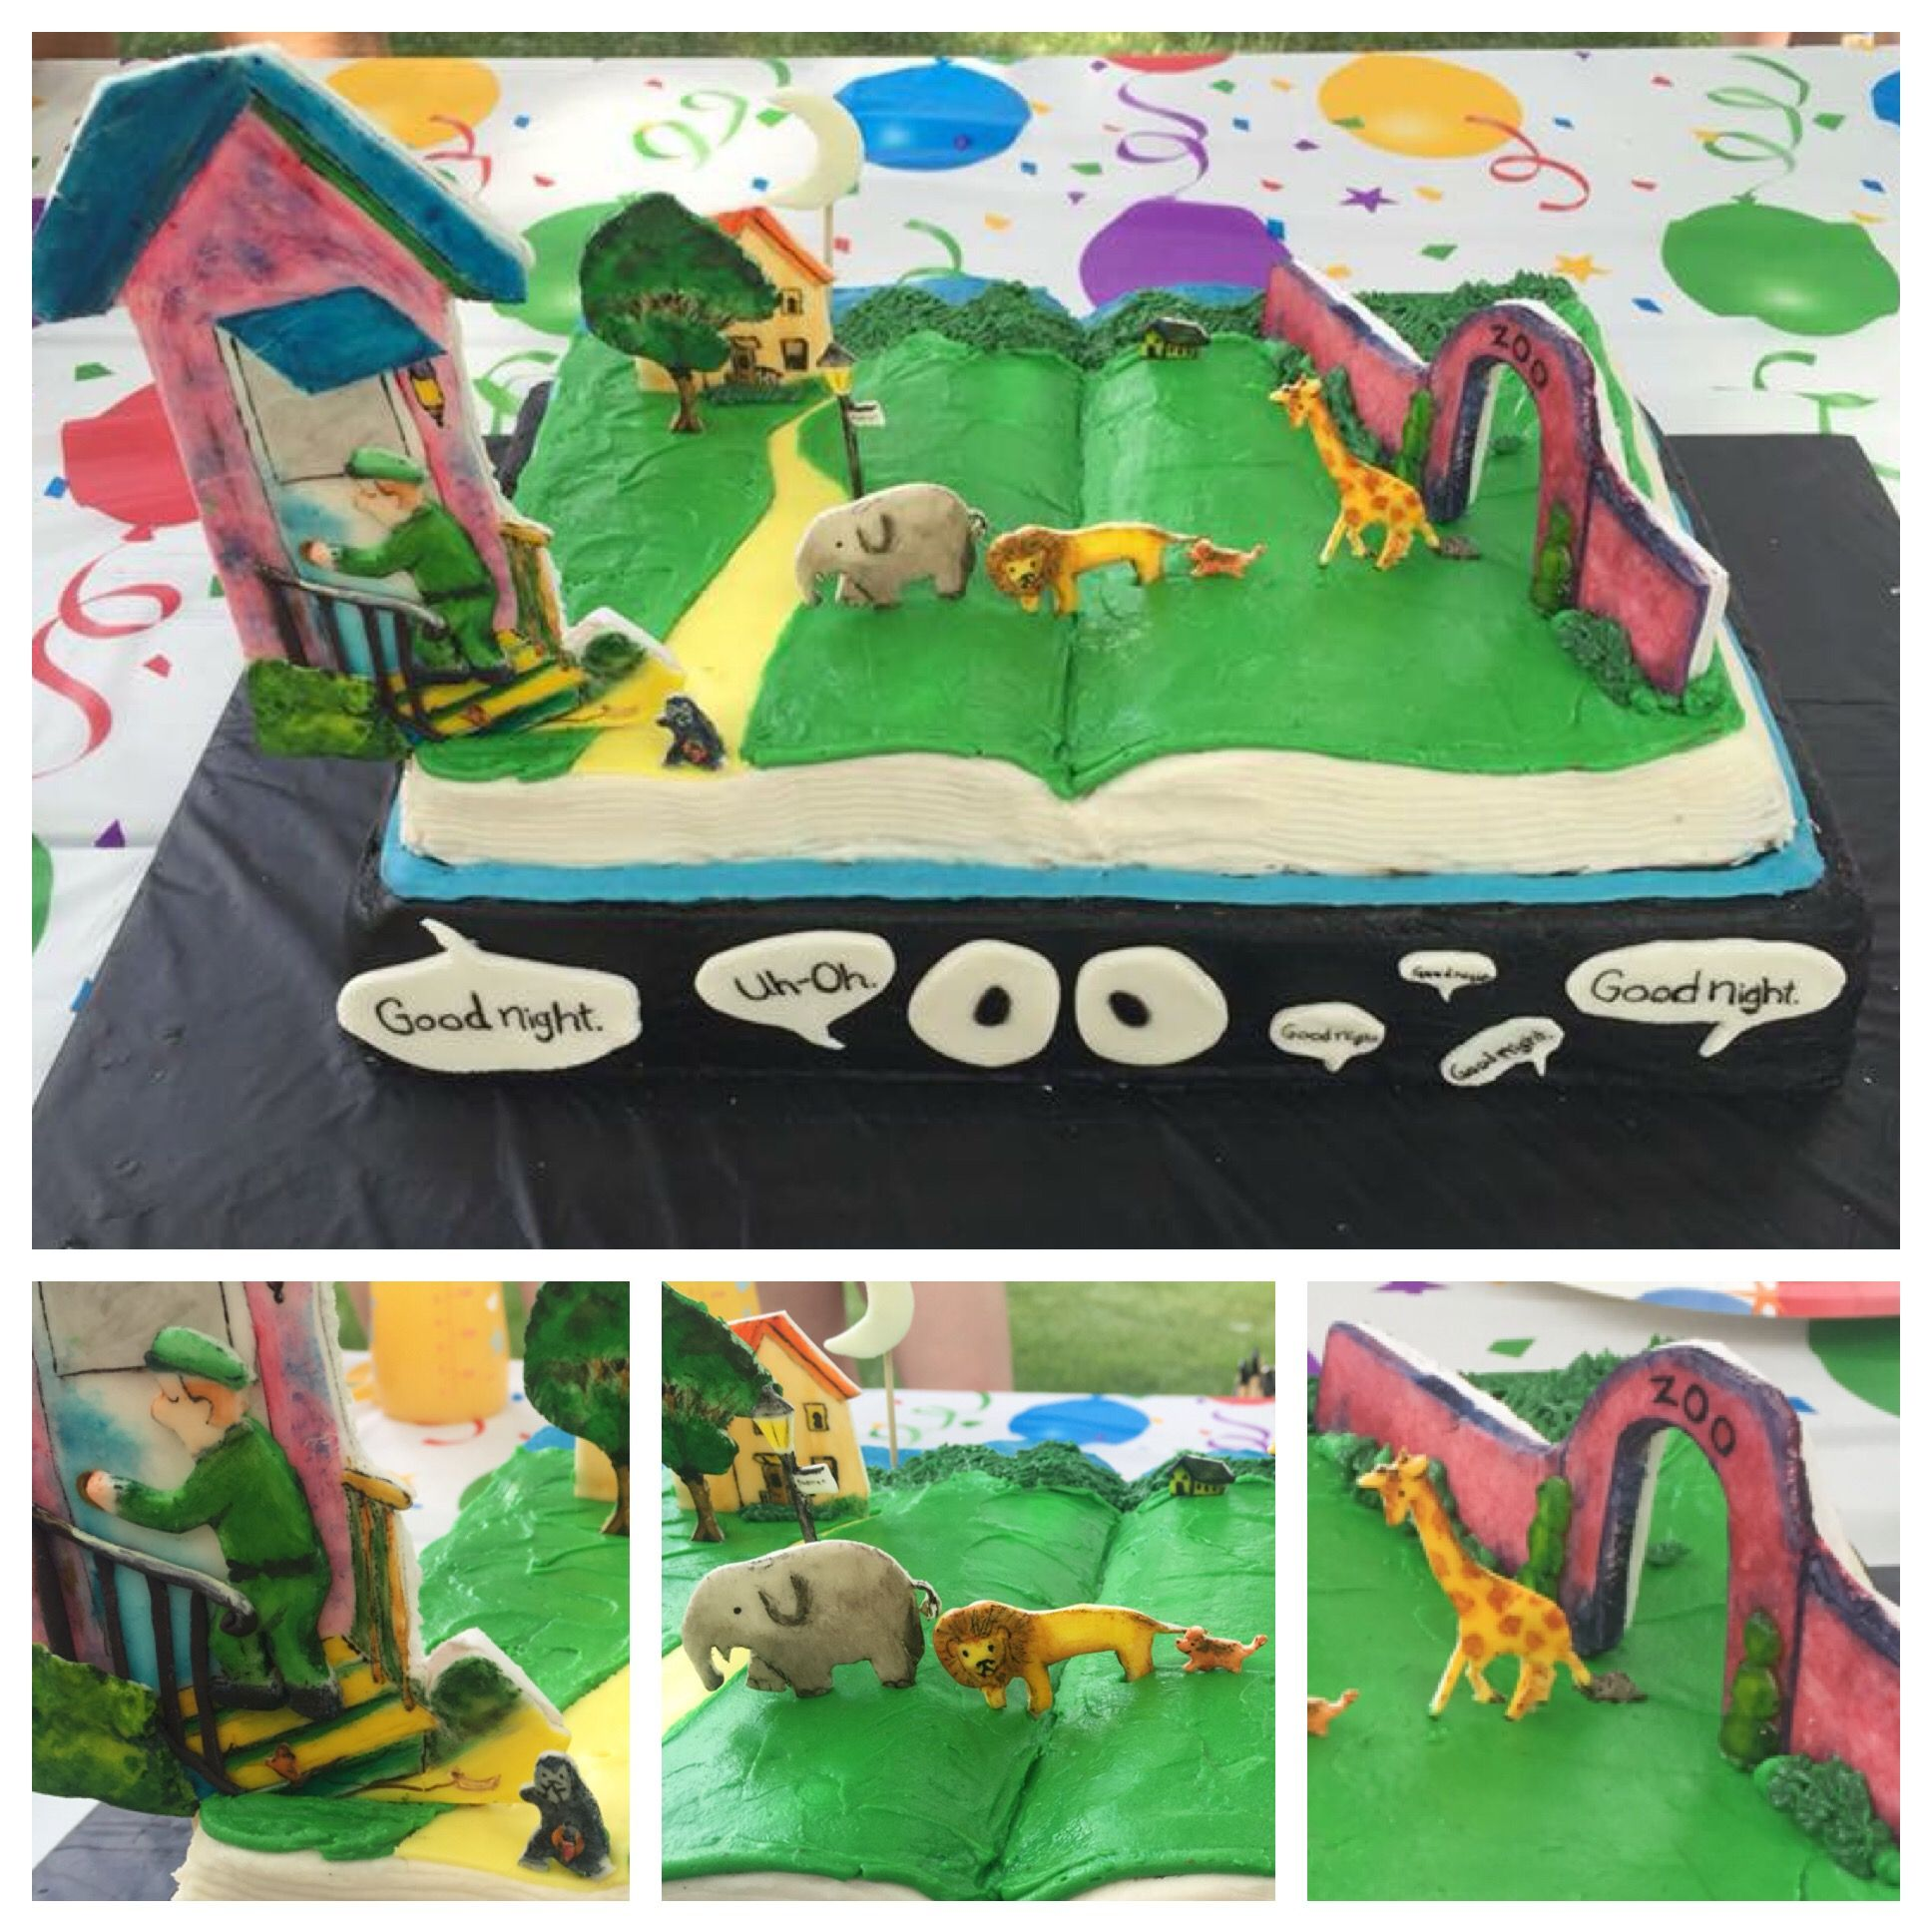 This Is Our Good Night Gorilla Pop Up Cake This Was For